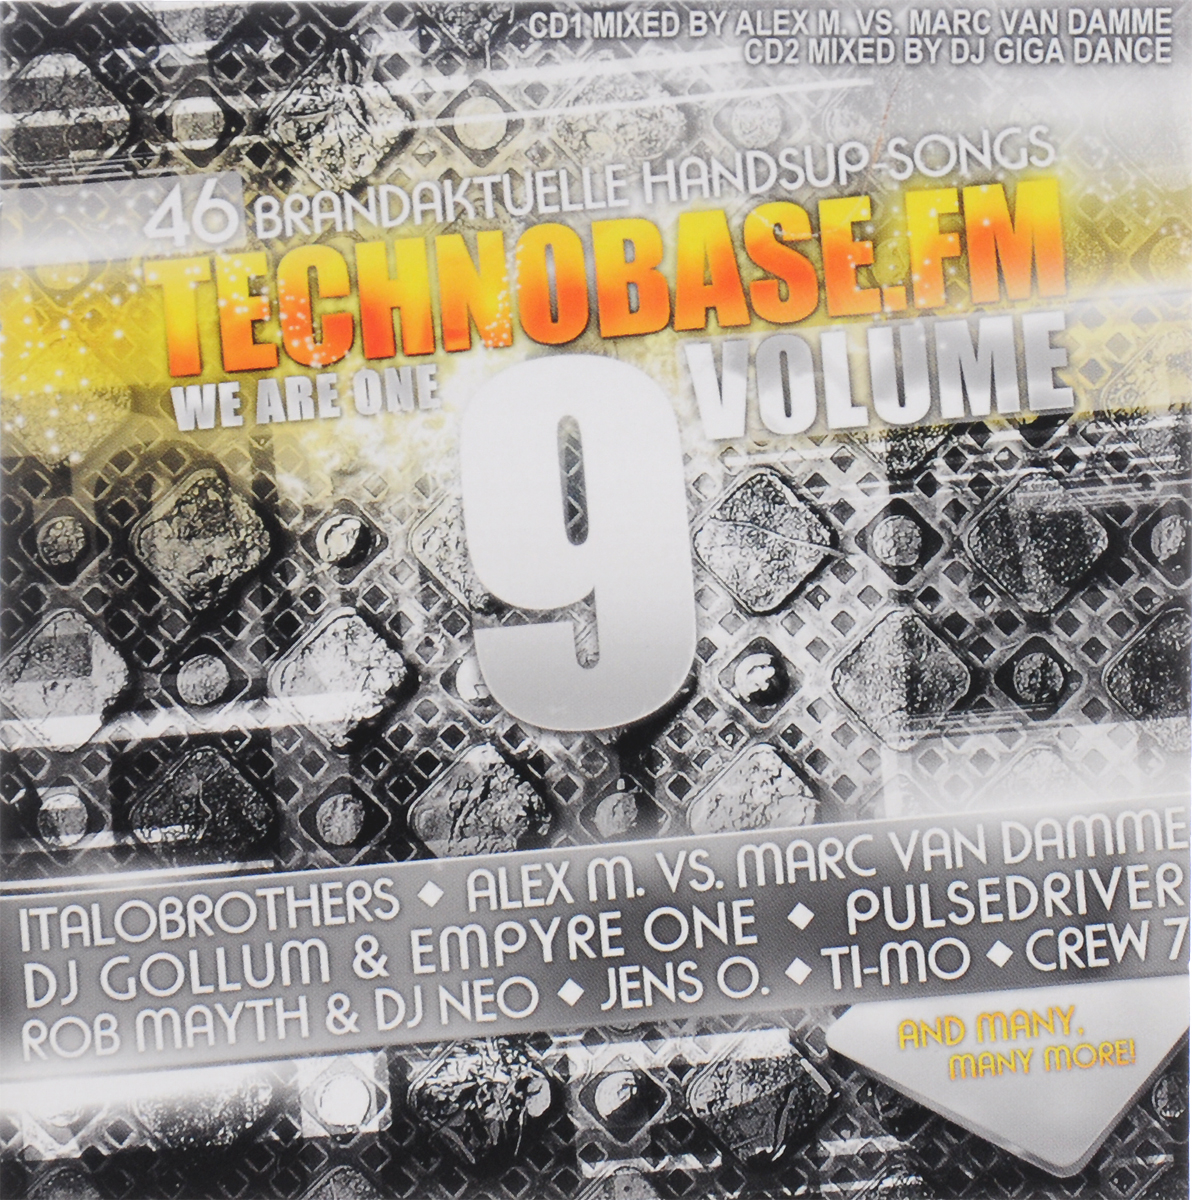 Technobase.Fm. Volume 9. Mixed By Alex M. Vs. Marc Van Damme, Dj Gigadance (2 CD)